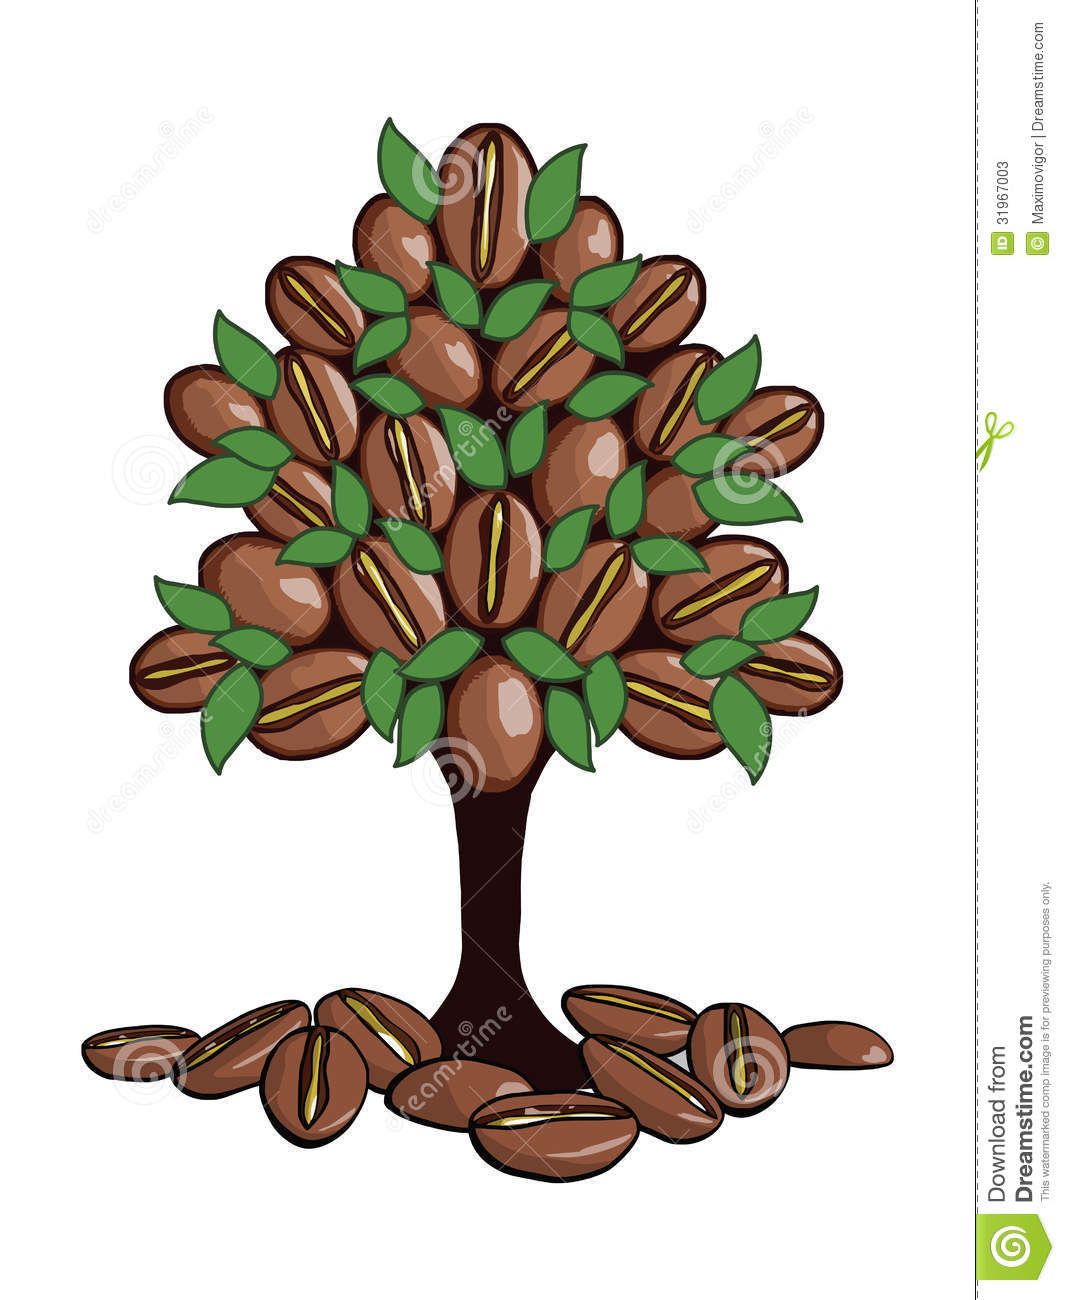 The coffee tree stock illustration. Illustration of badge ...